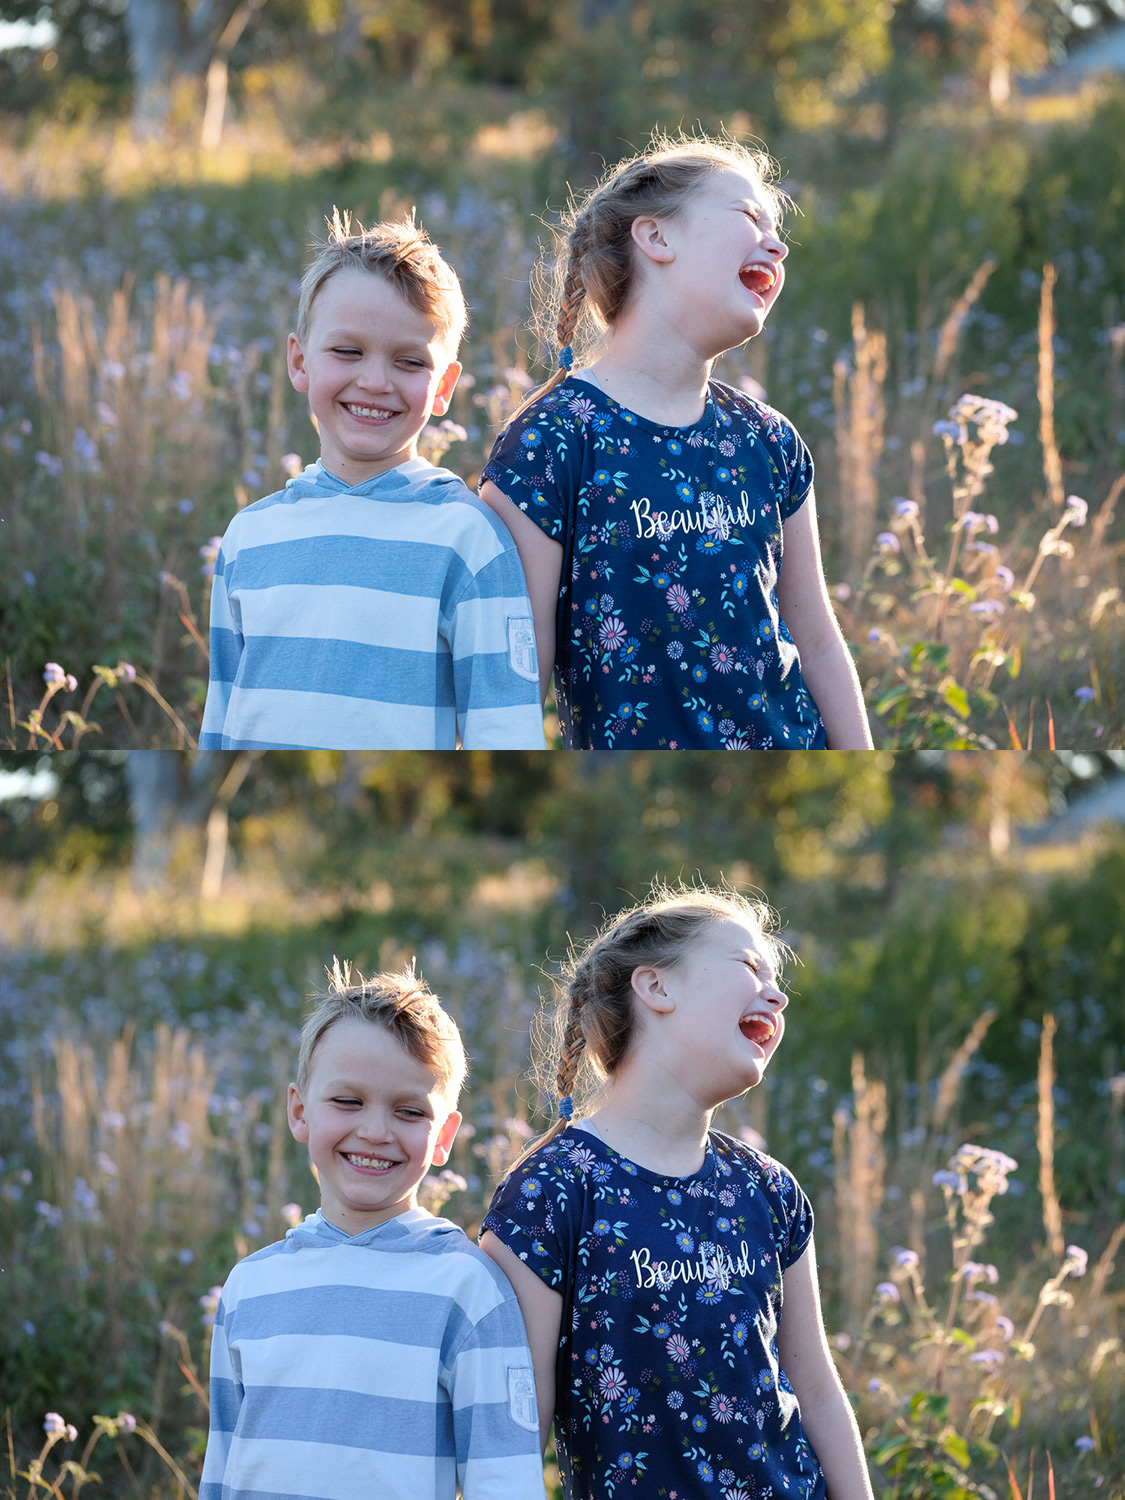 Image: Top: Kids in a filed RAW file. Bottom: Pro Neg Hi JPG. I love the colors, contrast, and tones...